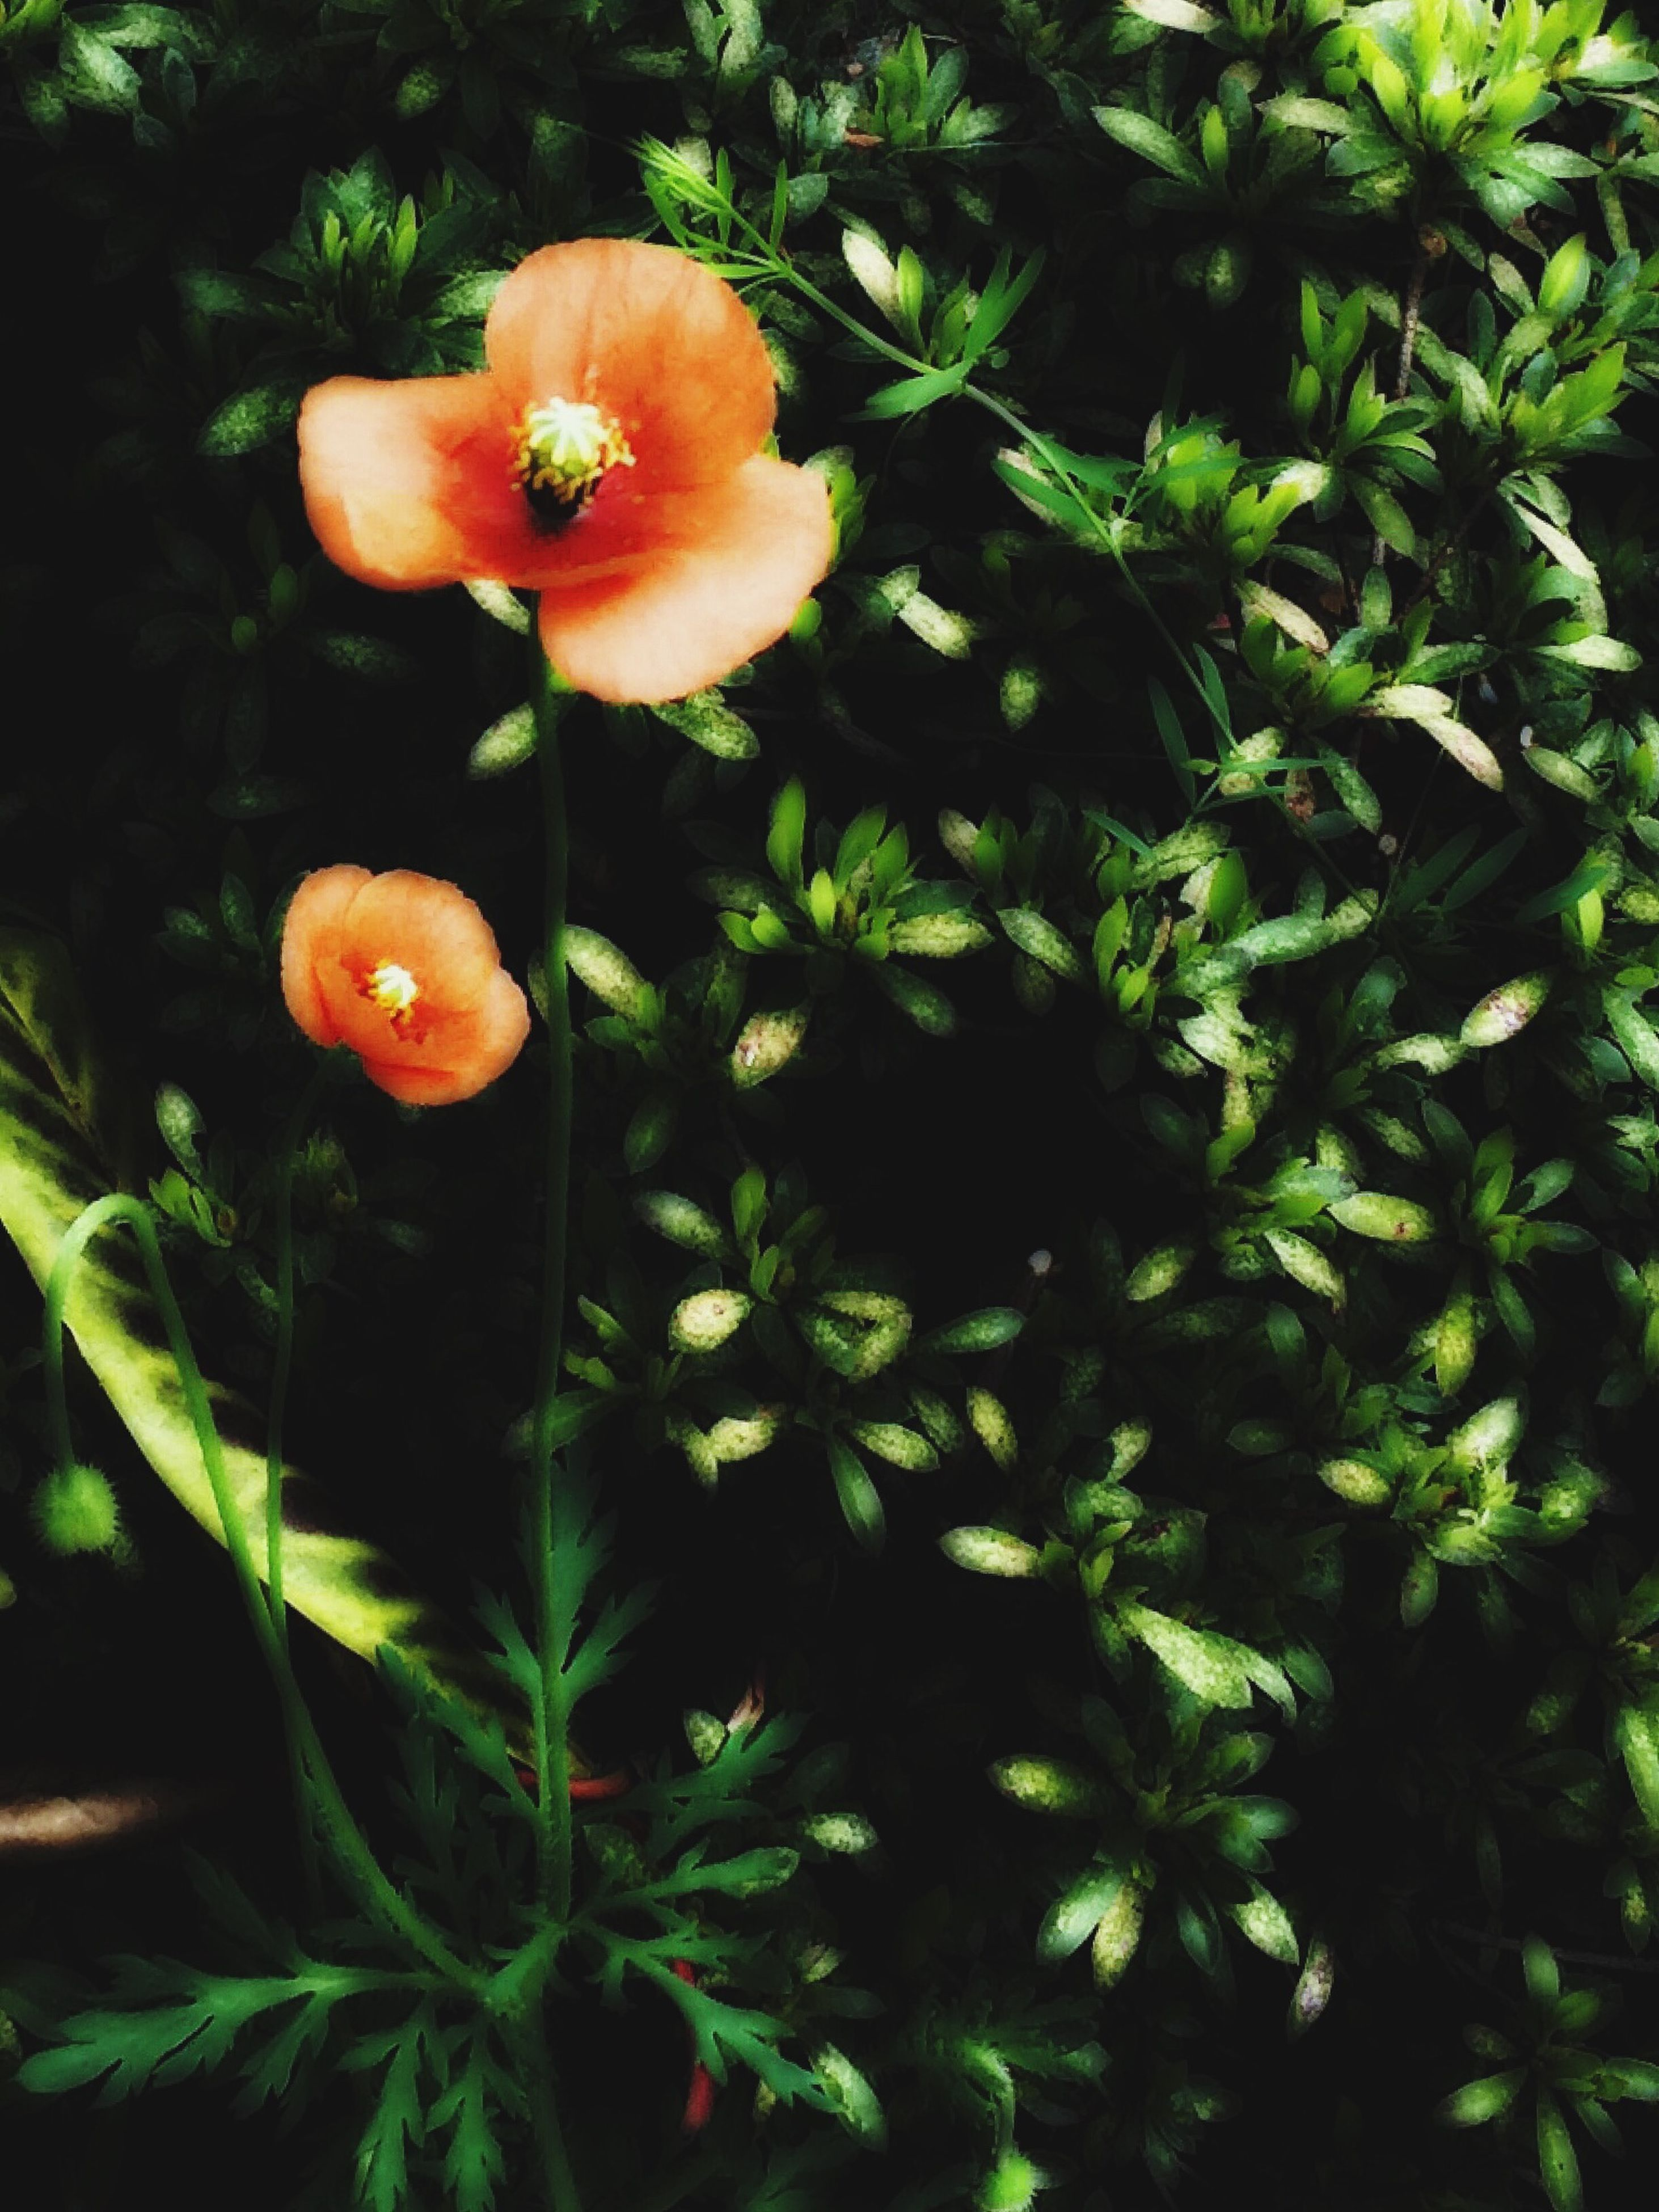 flower, freshness, growth, petal, fragility, beauty in nature, flower head, plant, nature, orange color, blooming, leaf, green color, close-up, in bloom, no people, park - man made space, outdoors, red, sunlight